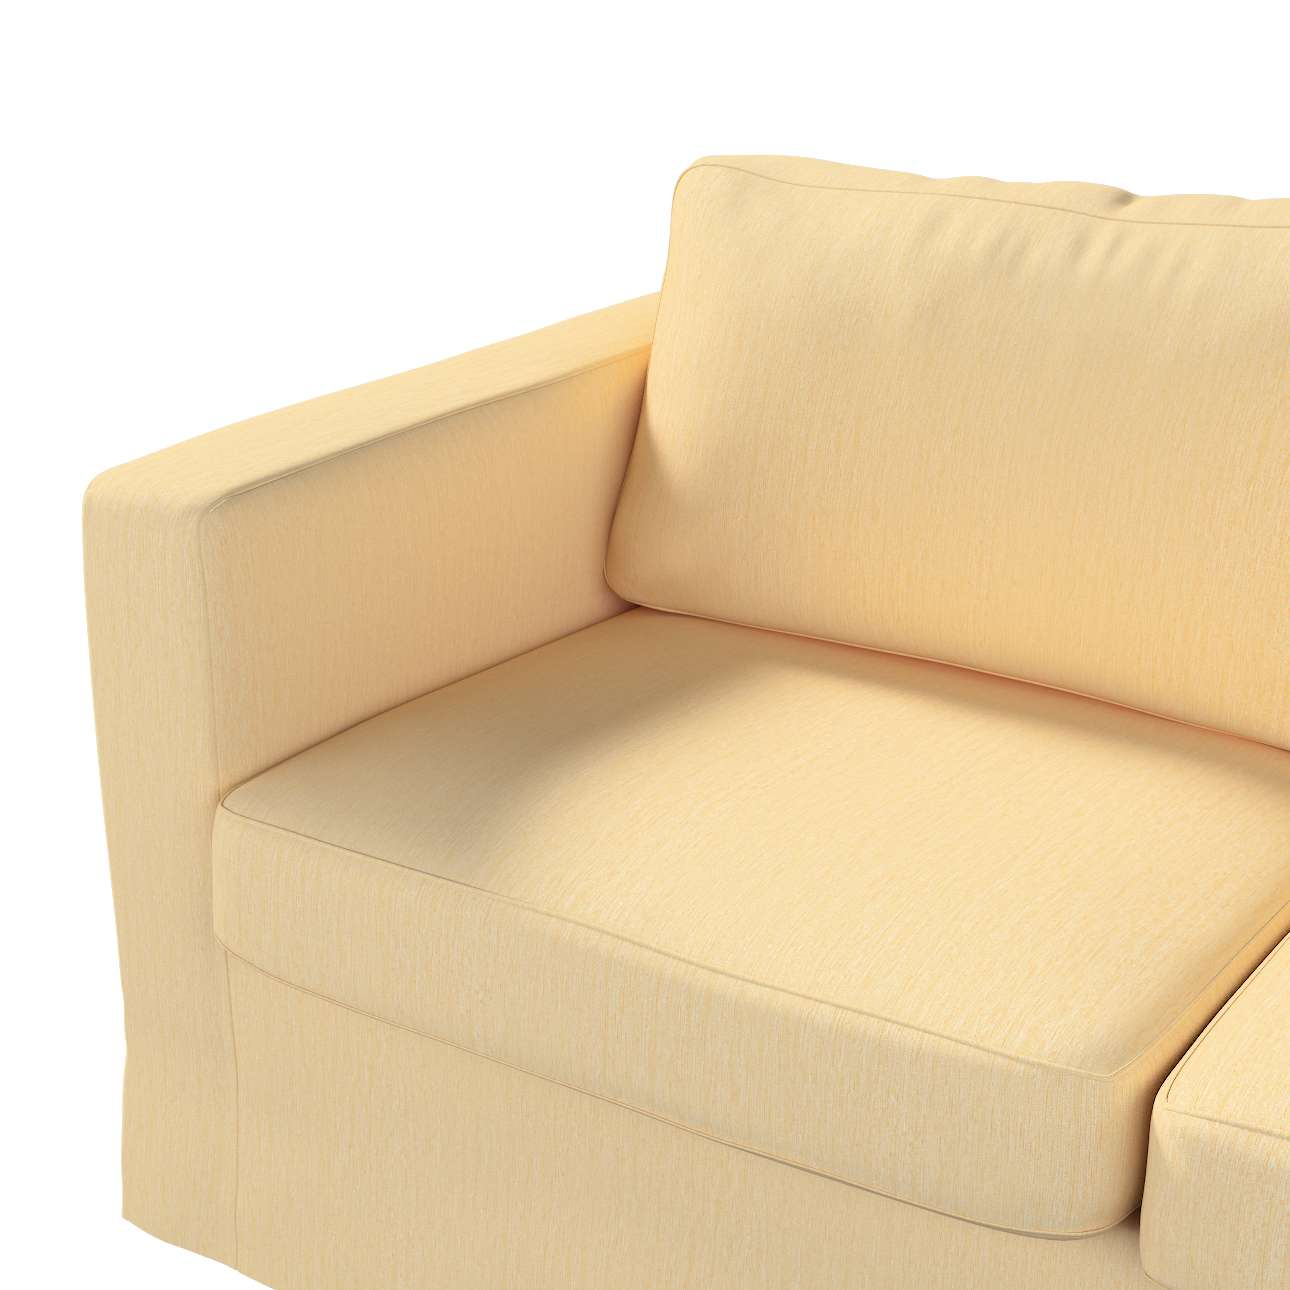 Floor length Karlstad 2-seater sofa cover in collection Madrid, fabric: 160-49